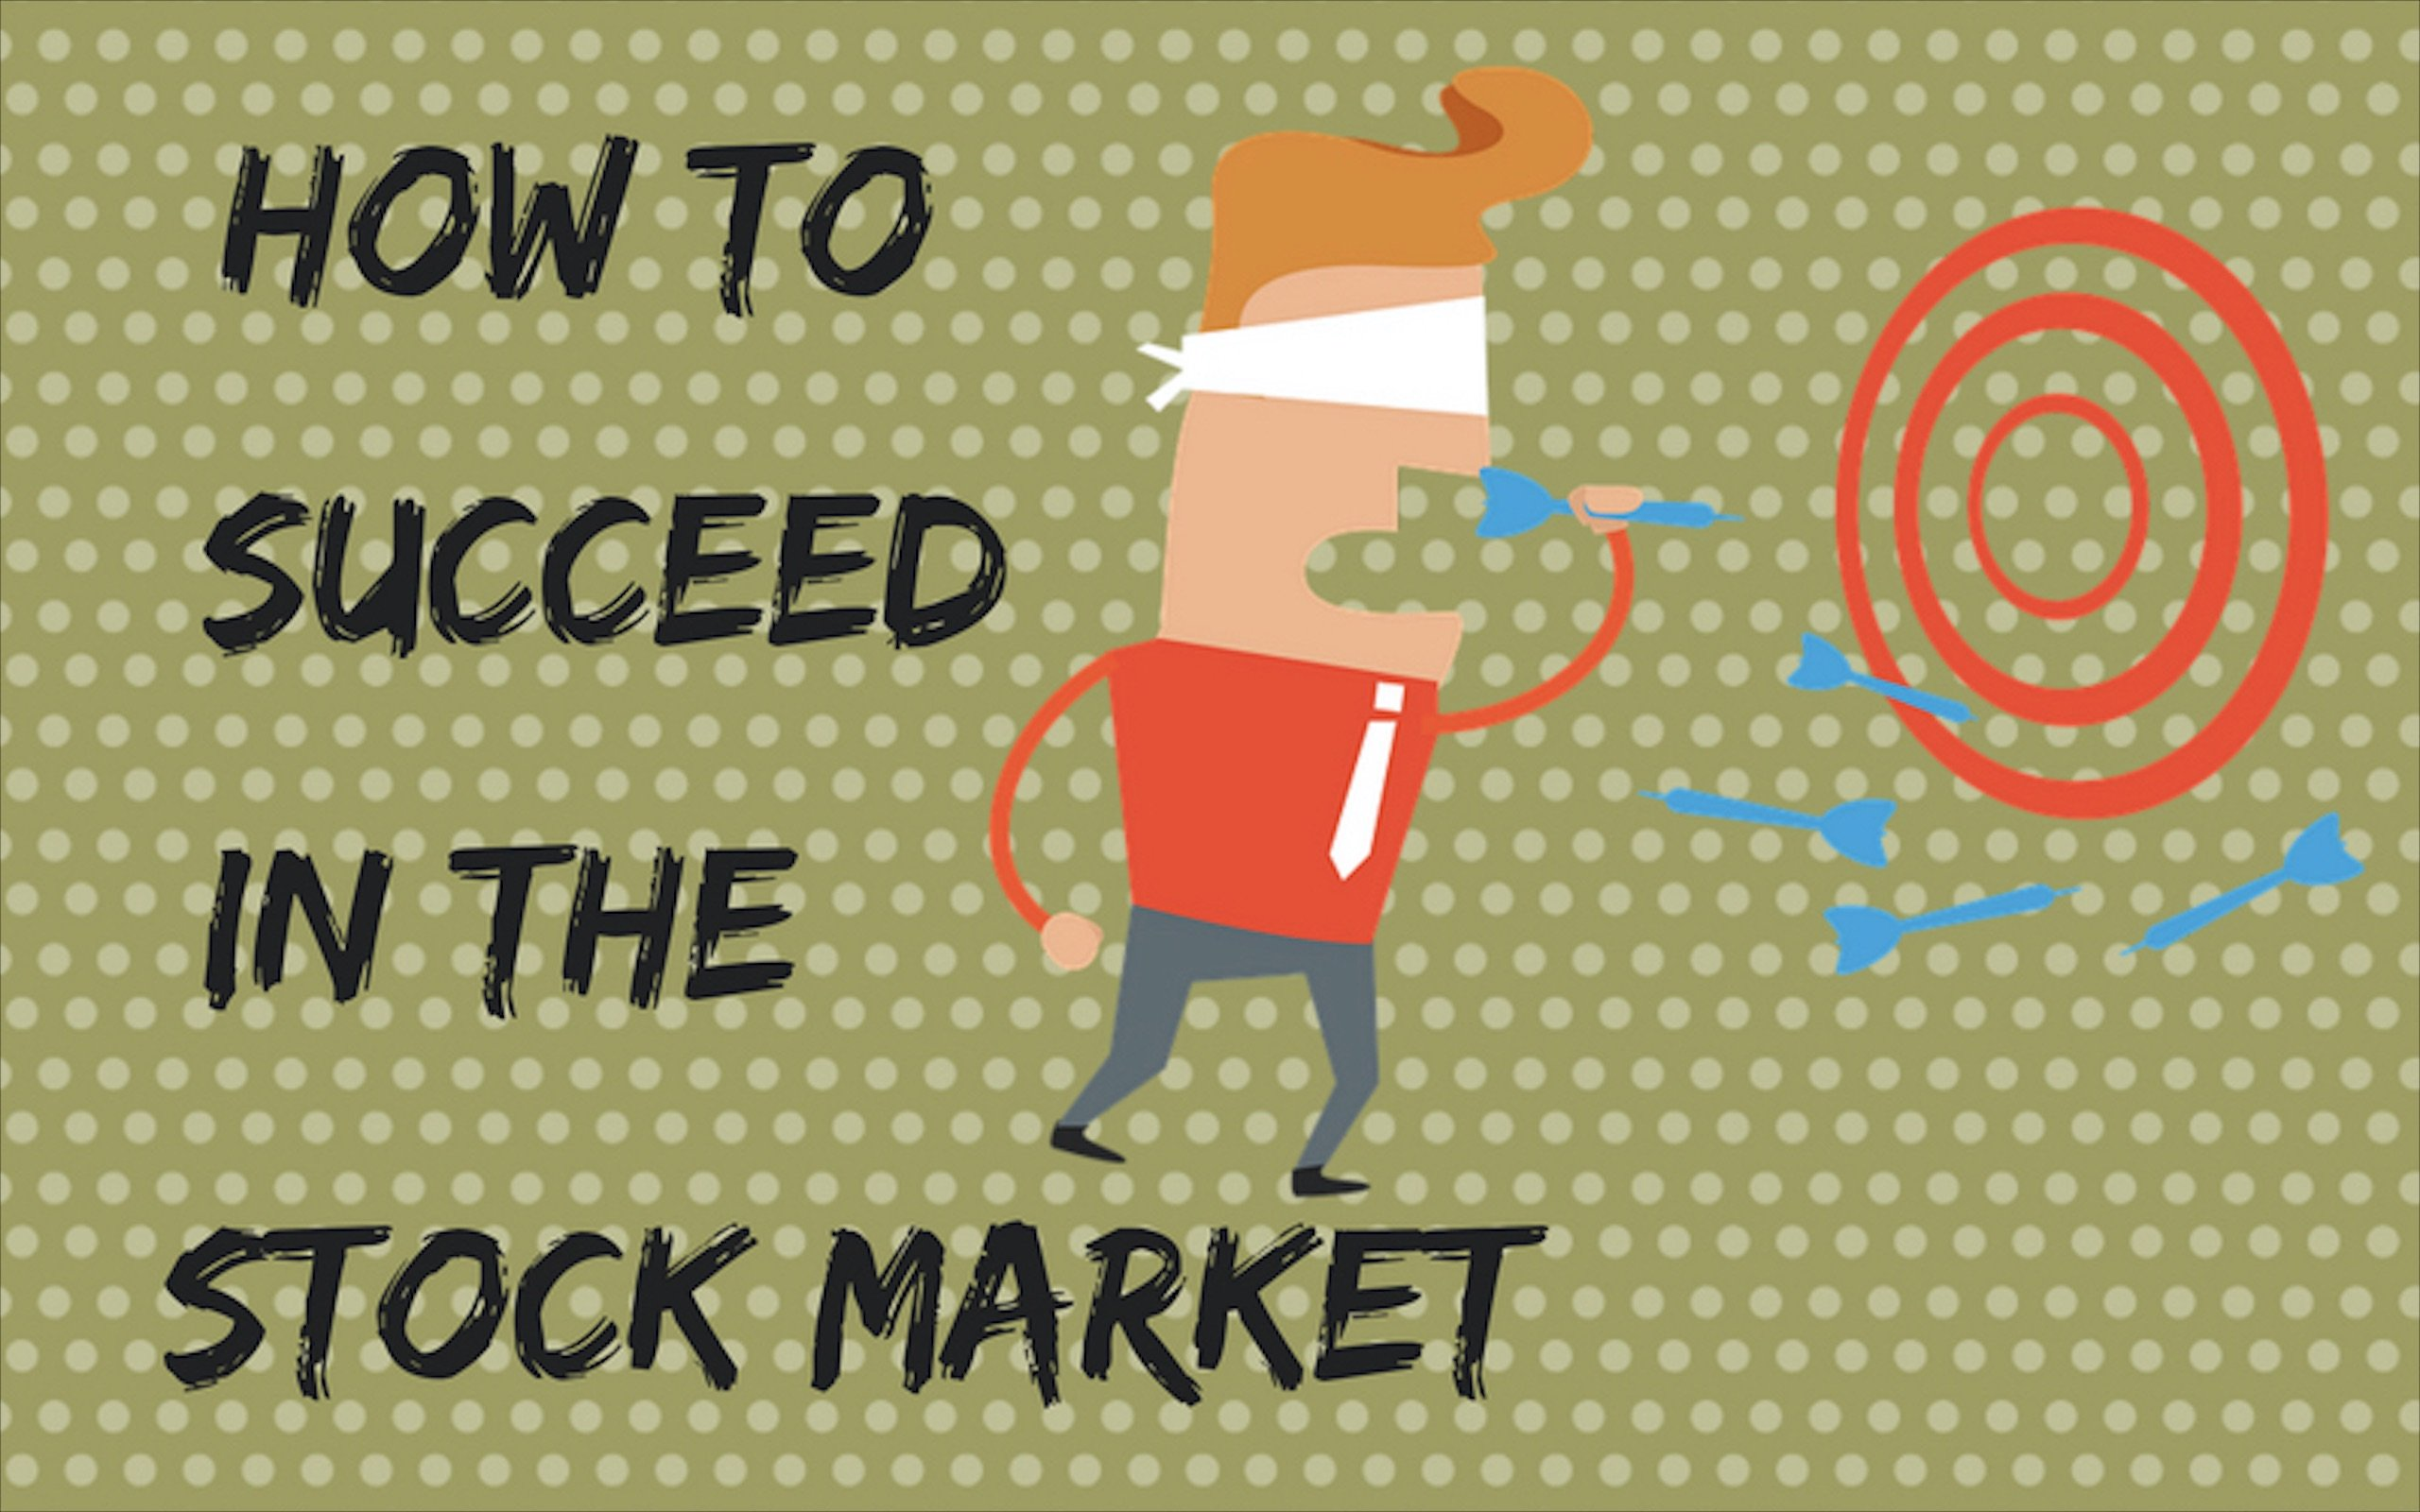 How to succeed in the stock market